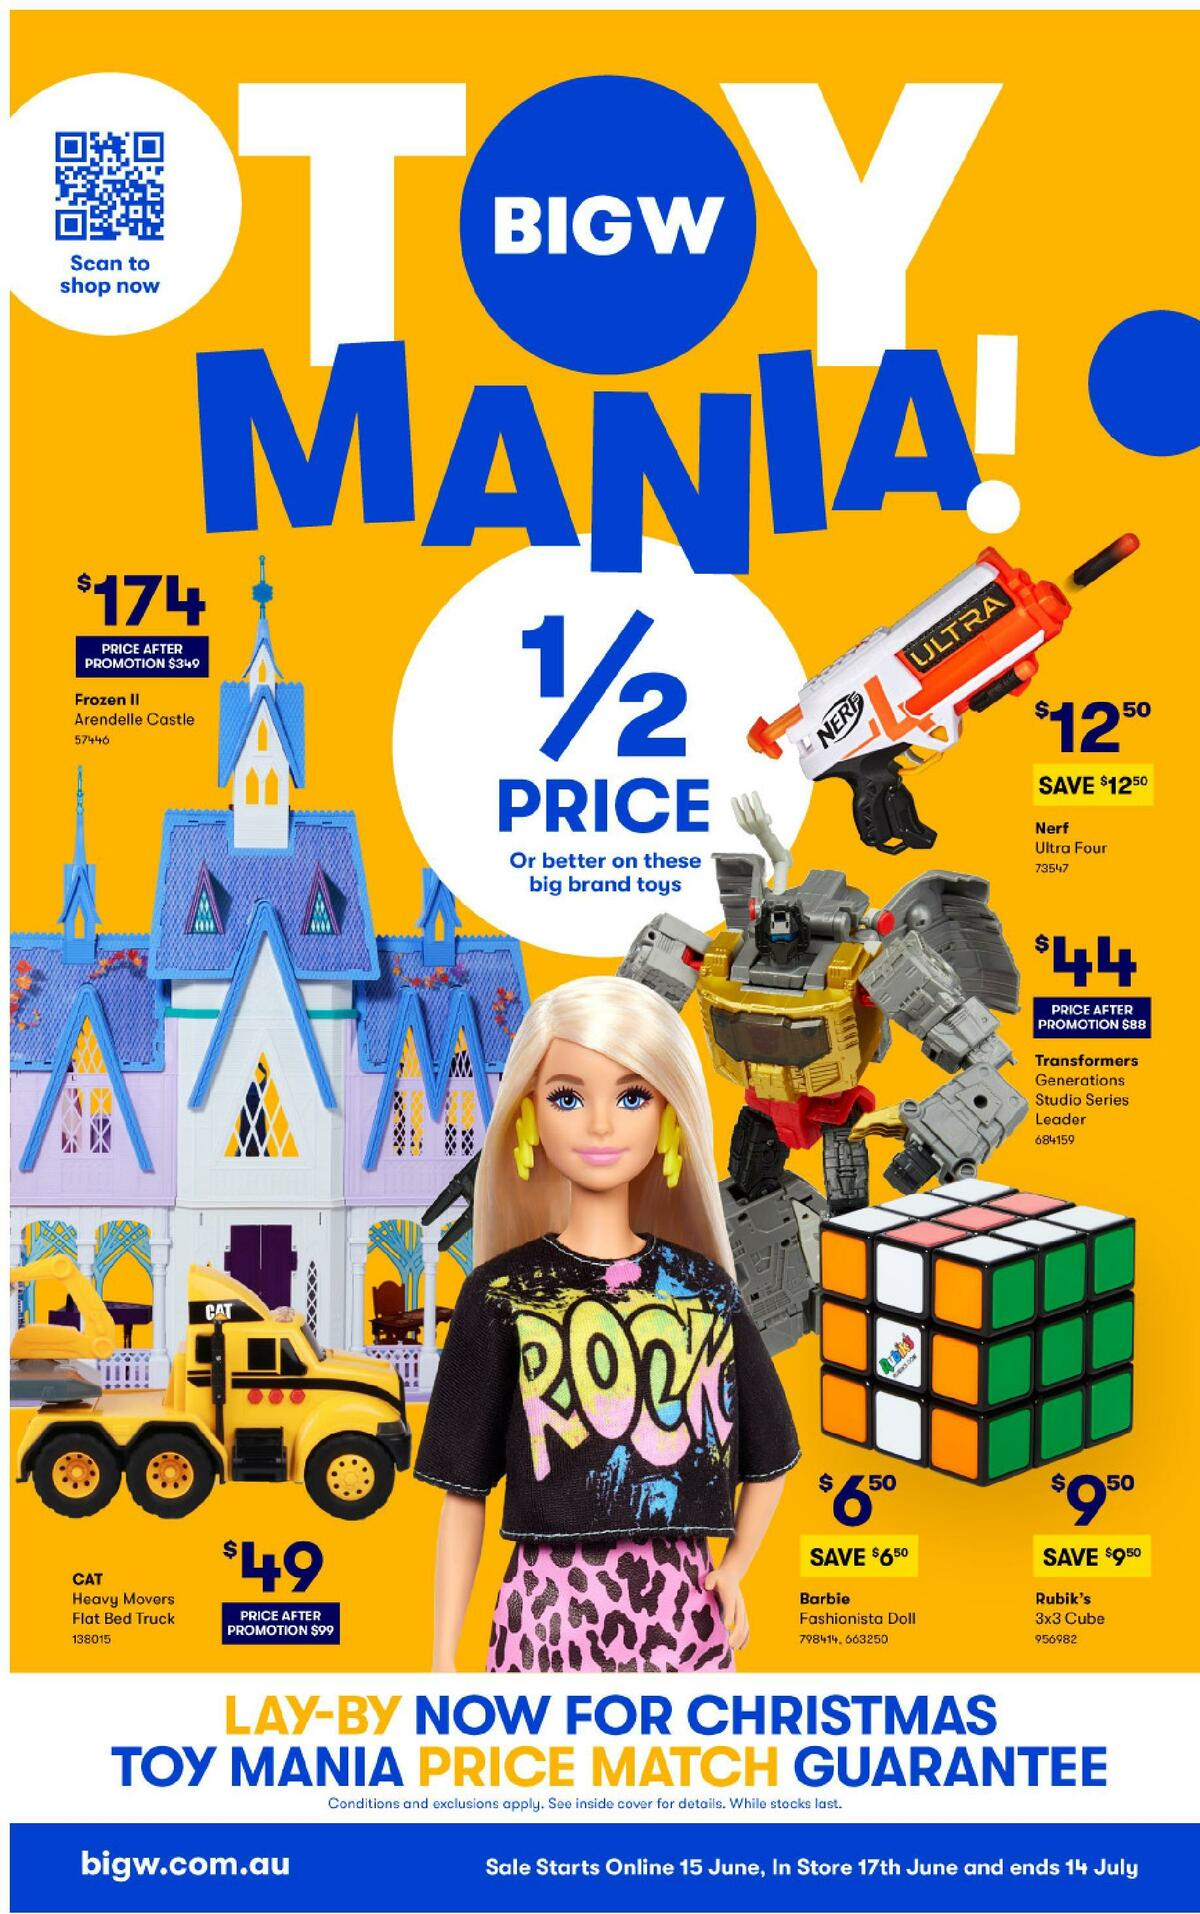 Big W Toy Mania! Catalogues from June 15